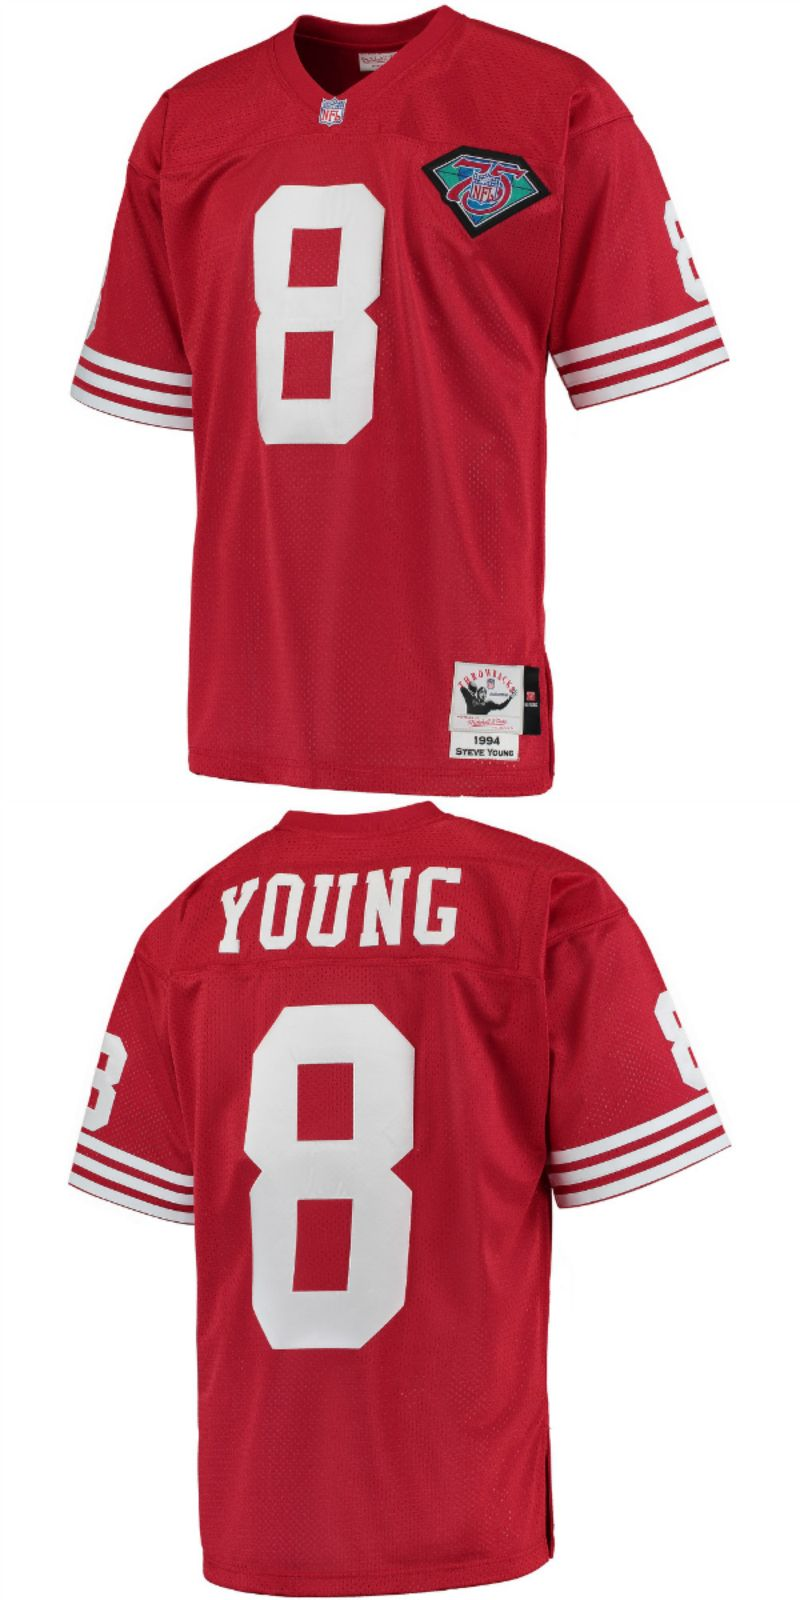 info for c5c90 0f635 UP TO 70% OFF. Steve Young San Francisco 49ers Mitchell ...